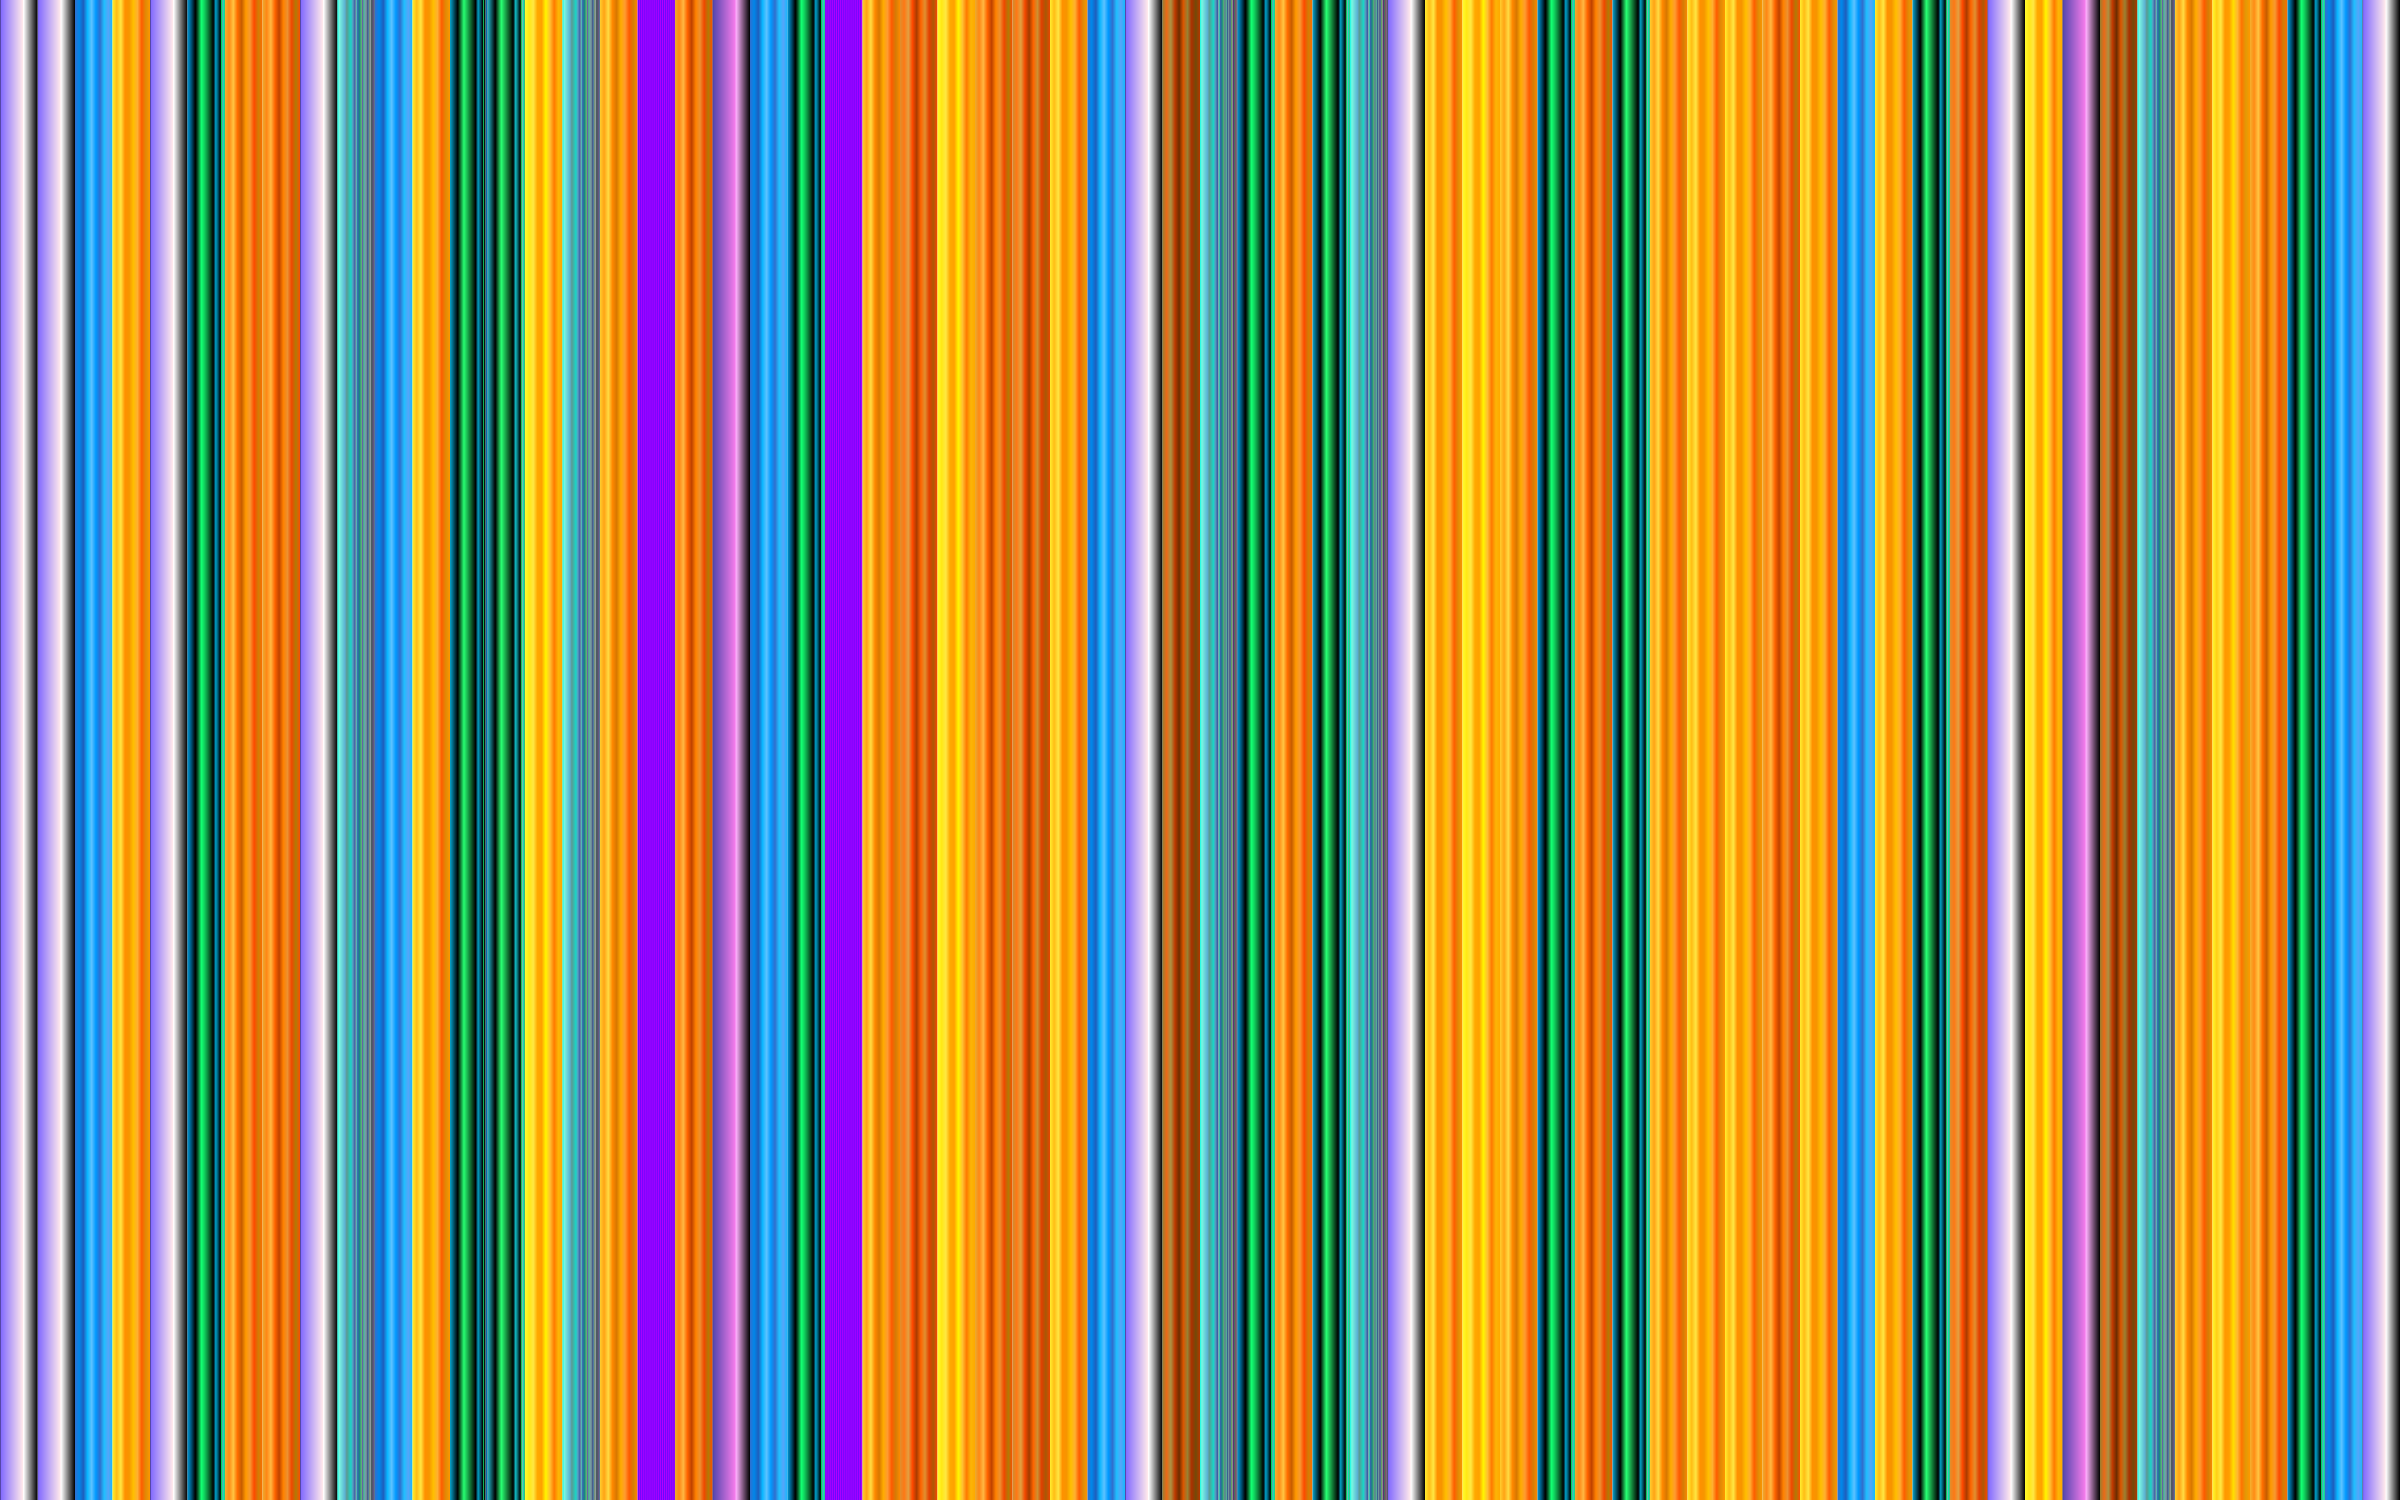 Vibrant Vertical Stripes 6 by GDJ